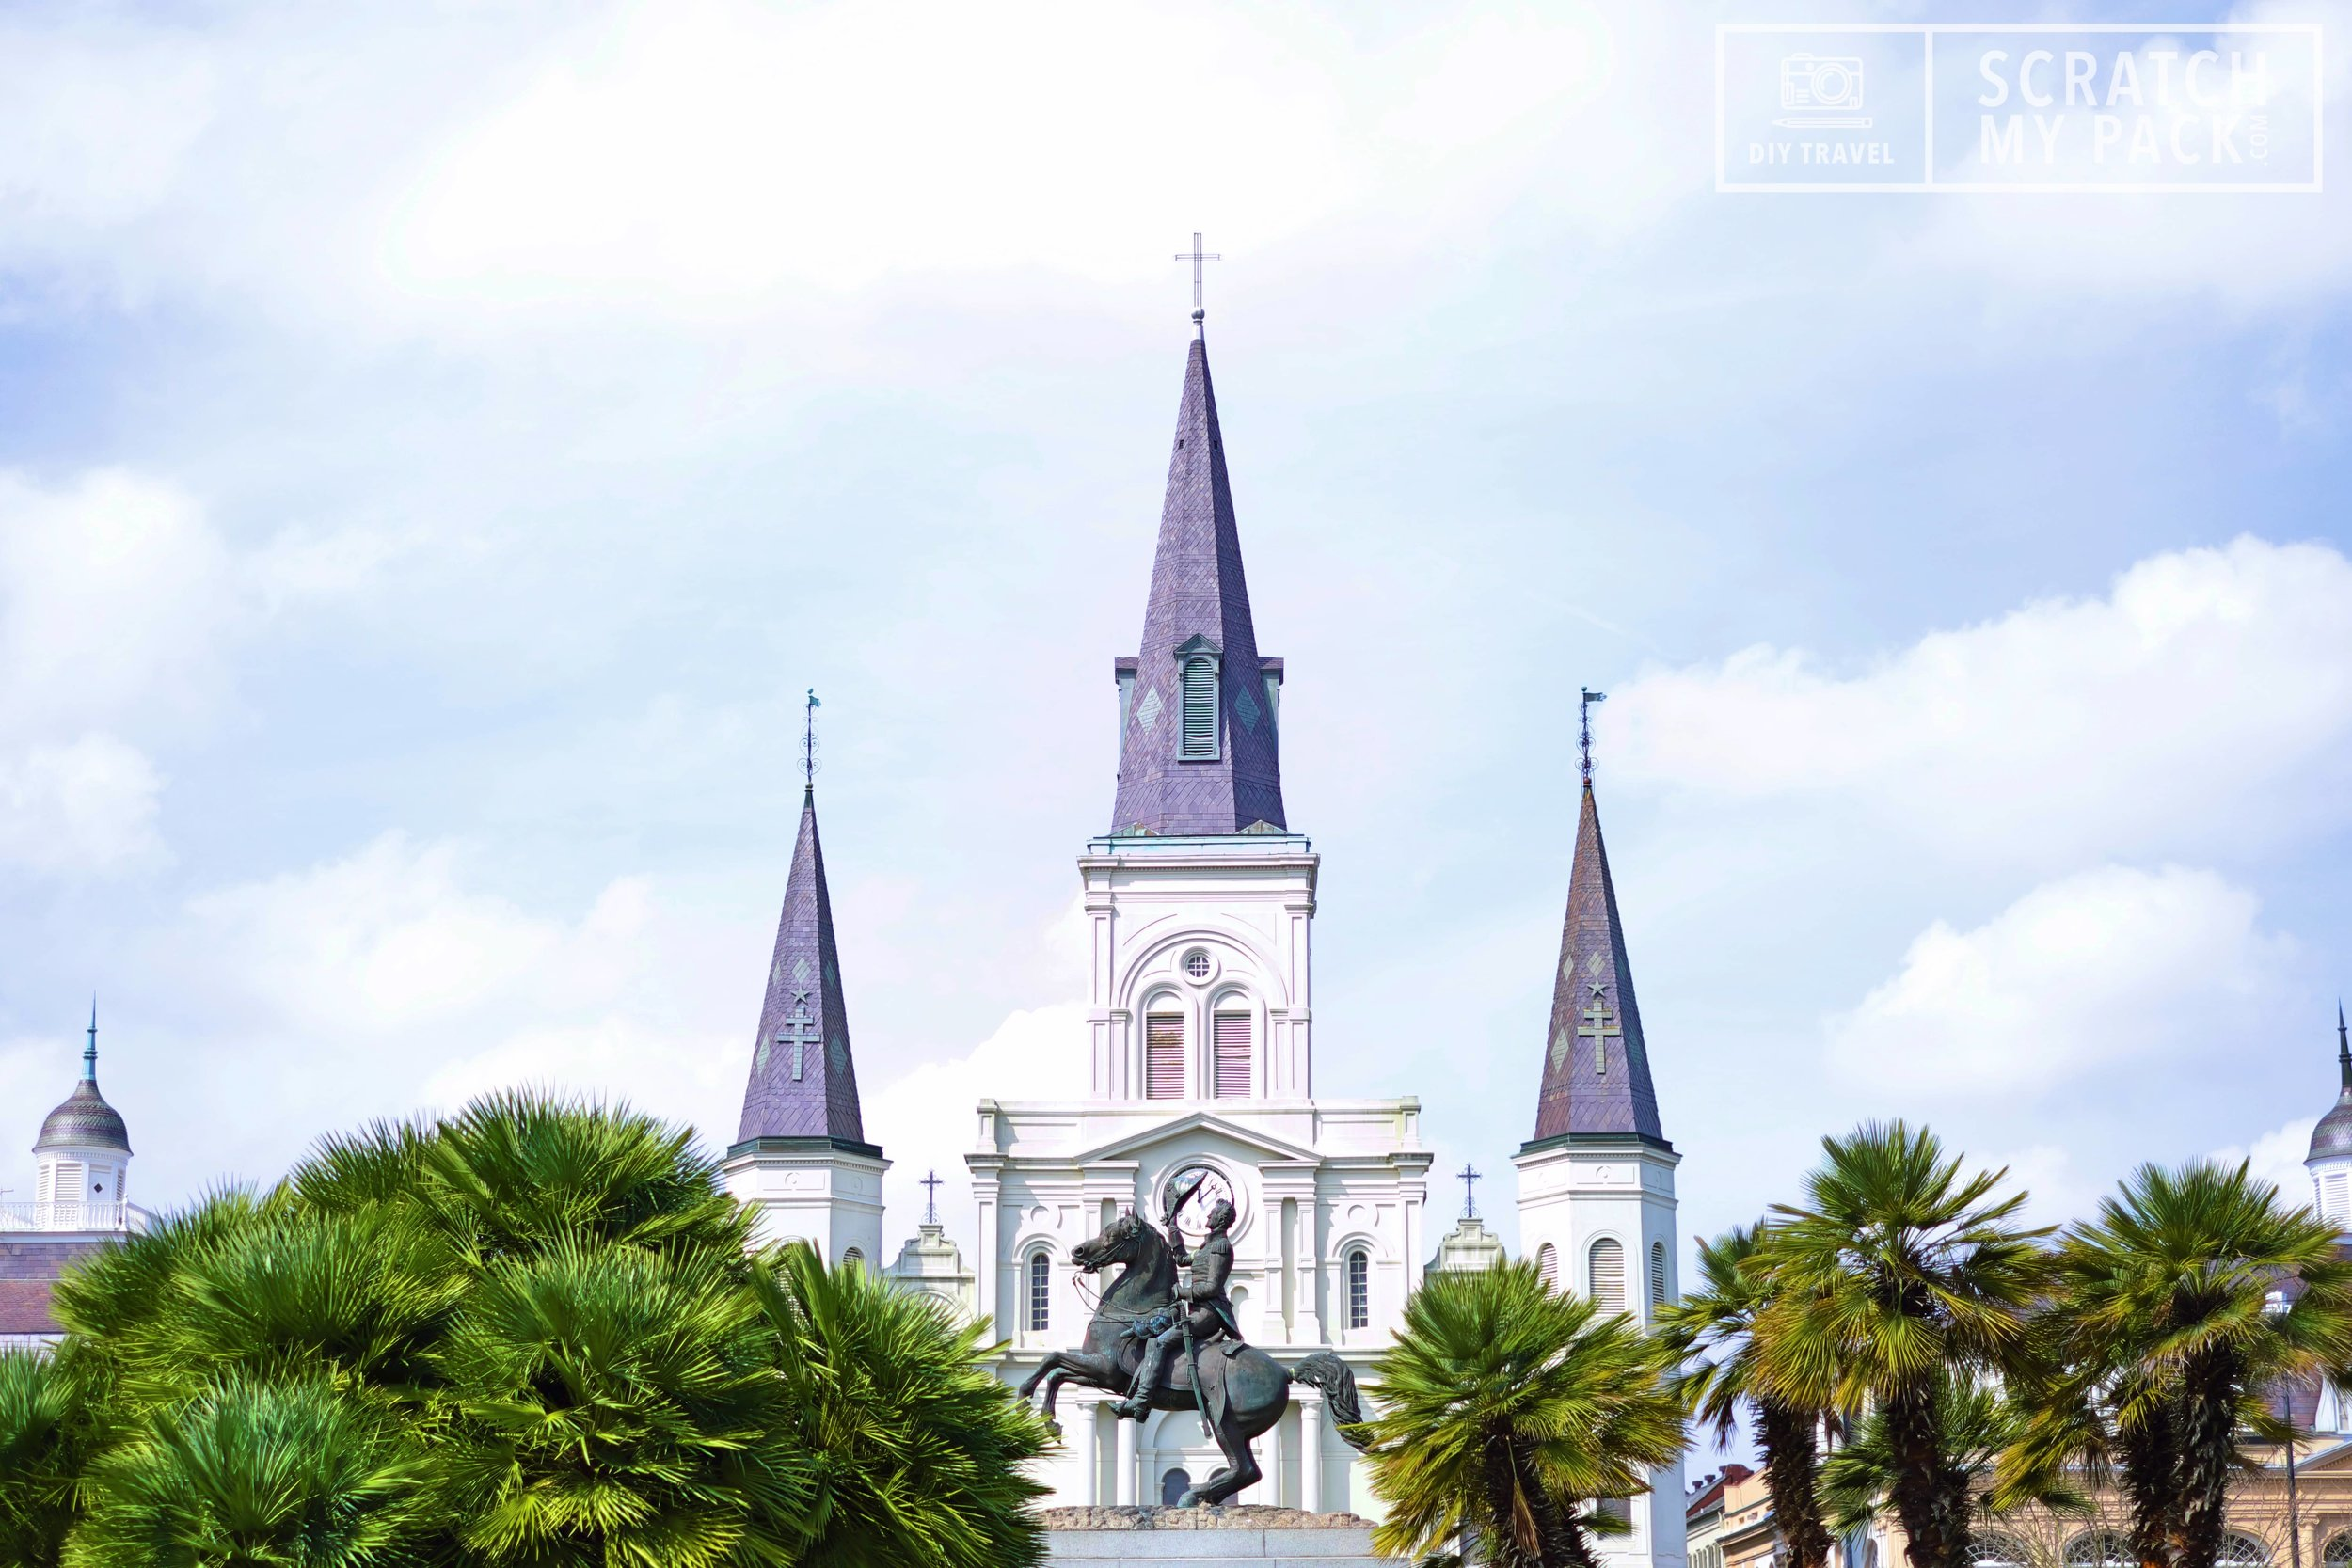 Jackson Square  -  Free to visit -  Jackson Square is a historic park in the French Quarter of New Orleans. It was declared a National Historic Landmark in 1960, for its central role in the city's history, and as the site where in 1803 Louisiana was made United States territory pursuant to the Louisiana Purchase. Nowadays the square is filled with live musicians, art, street performers, horse-drawn carriages, and food carts.